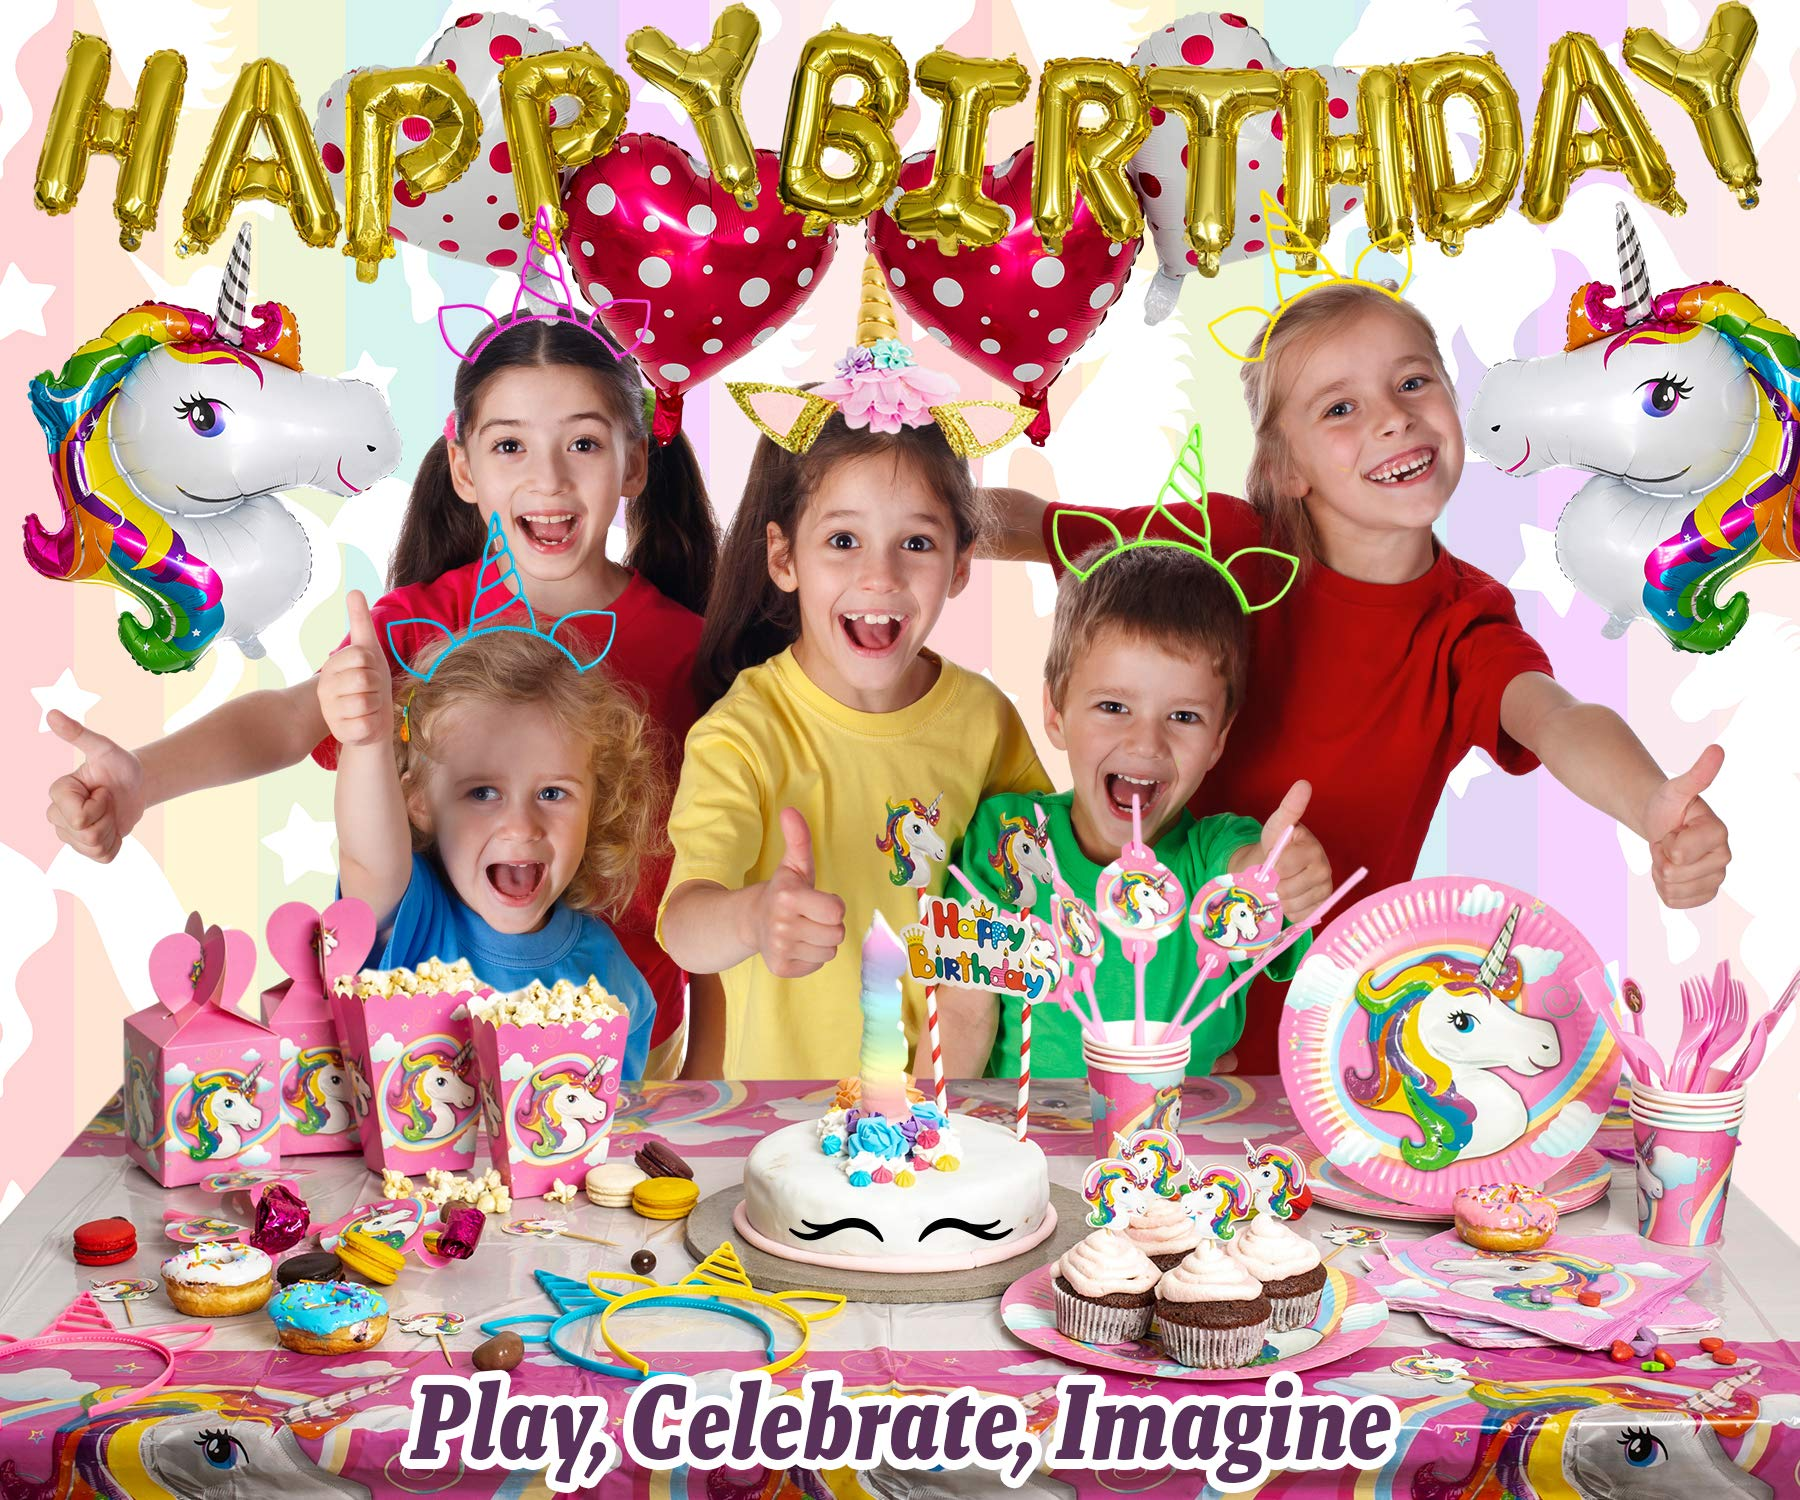 Imagine's Complete Unicorn Party Supplies – 220+ Piece Rainbow Girls Birthday Supplies Pack with Unicorn Balloons… 4